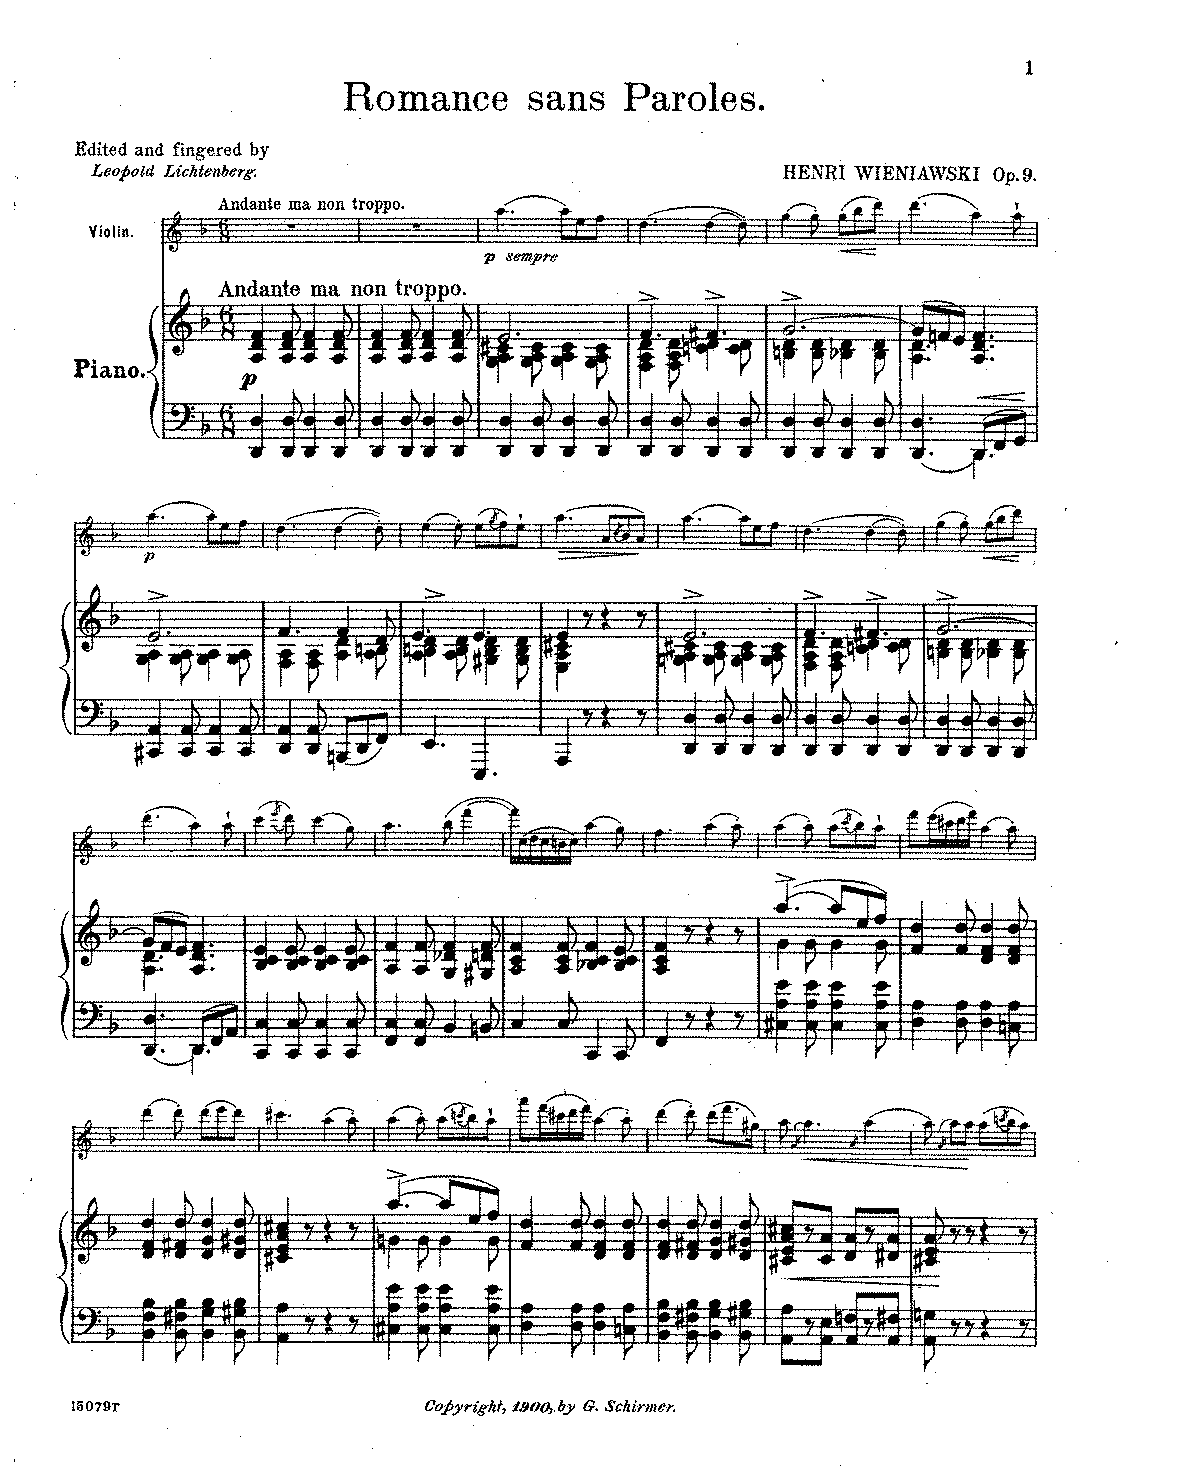 r ce sans paroles op wieniawski henri petrucci  sheet music